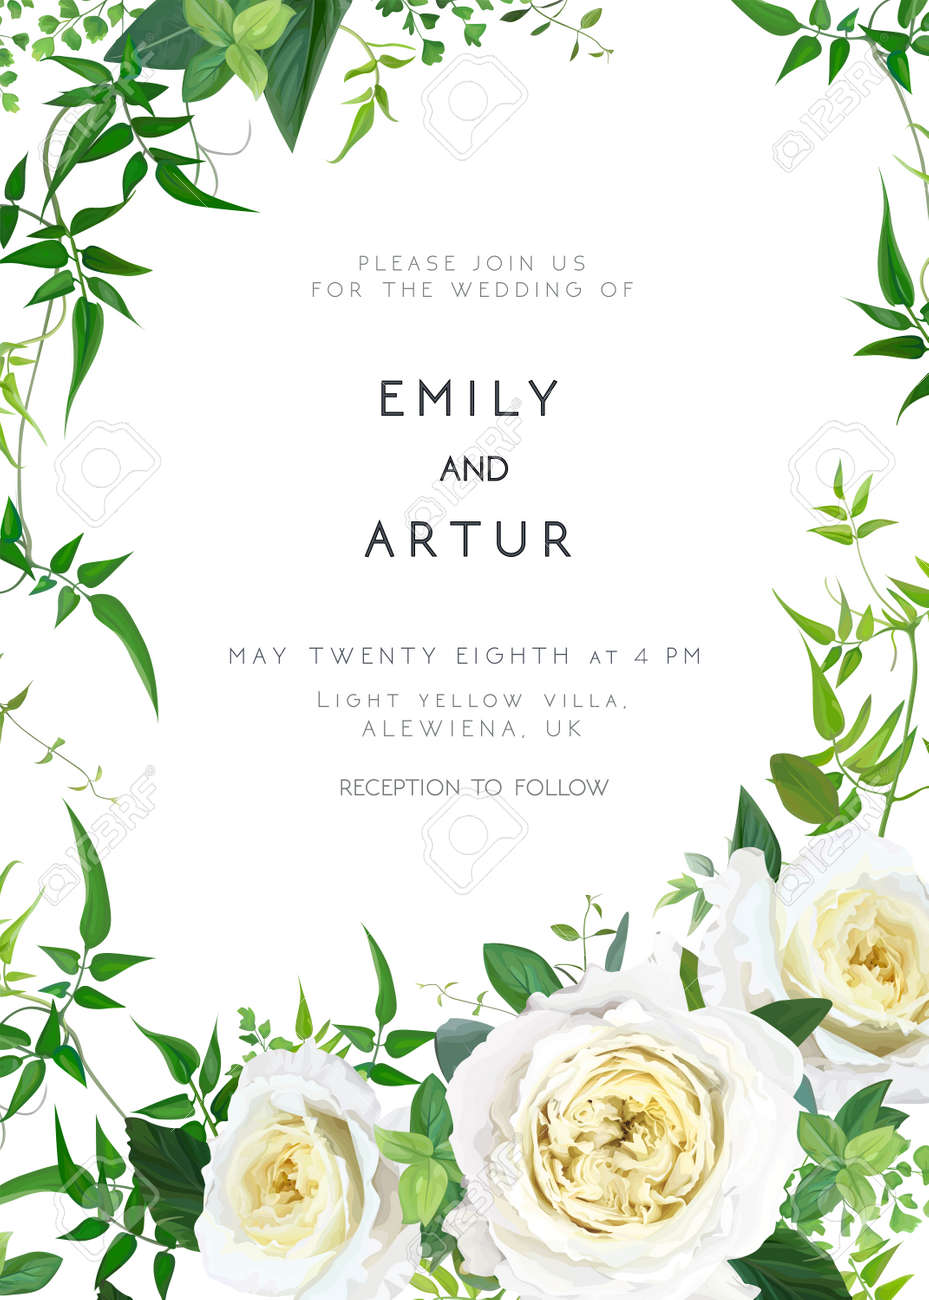 Trendy, greenery wedding floral vector invite, holiday invitation card. Light yellow garden roses flowers, tender smilax greenery leaves, vines, herbs, plants bouquet. Decorative frame, natural border - 166250017